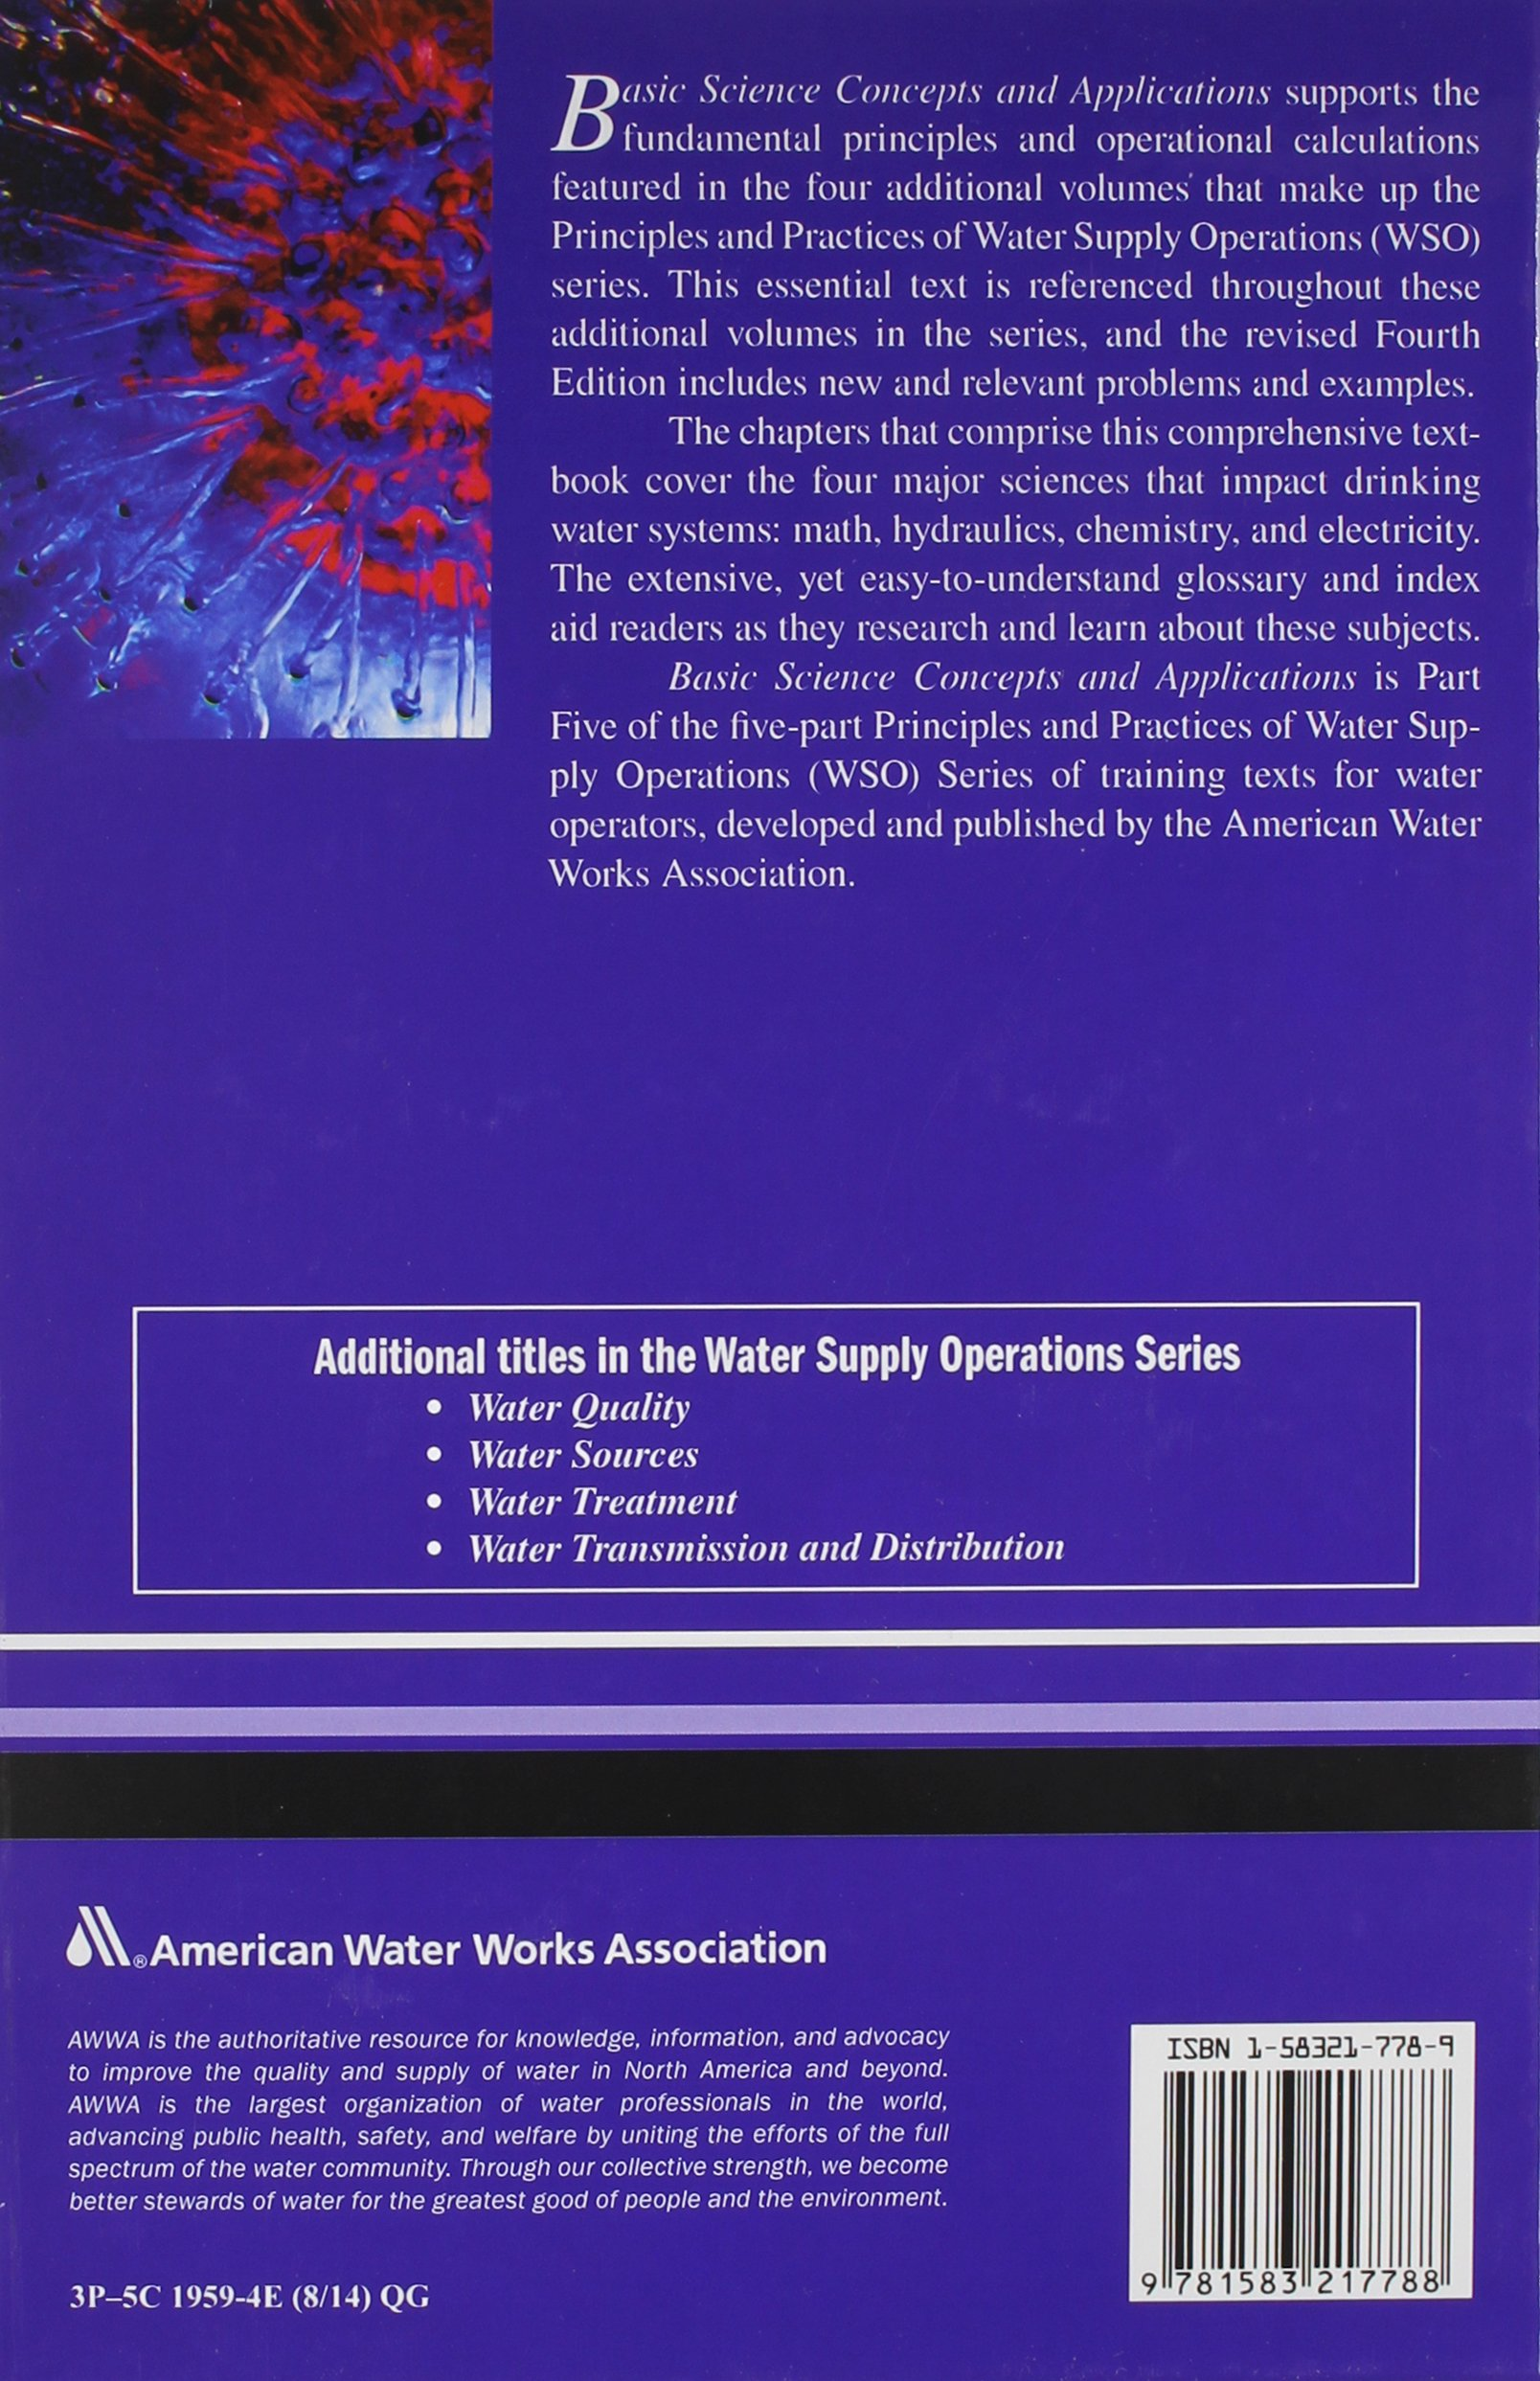 WSO Basic Science Concepts and Application: Principles and Practices of Water Supply Operations by Brand: American Water Works Assn